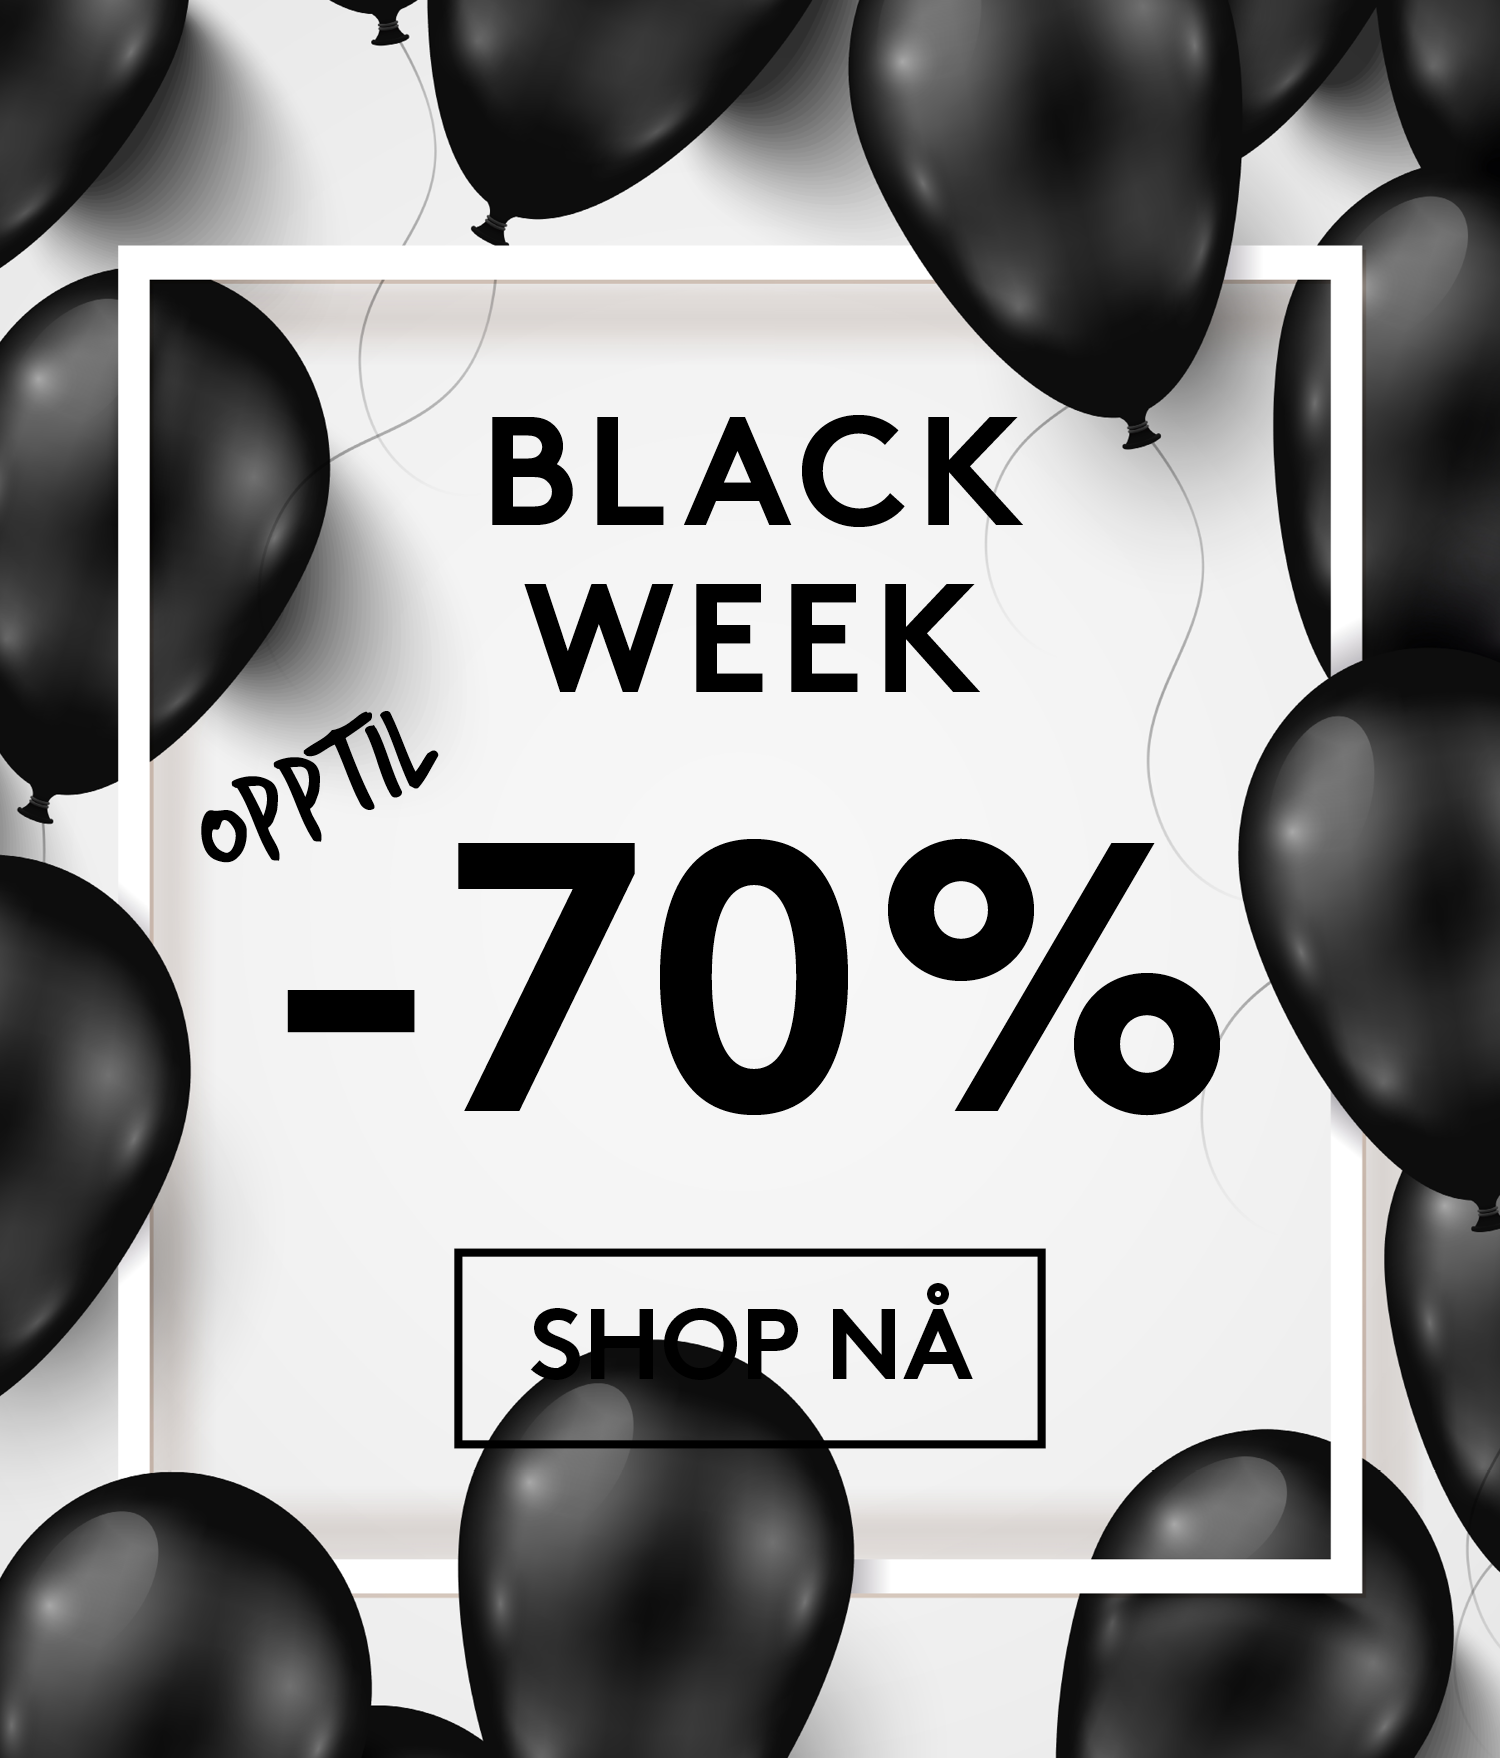 Black Friday + Black Week tilbud på sko